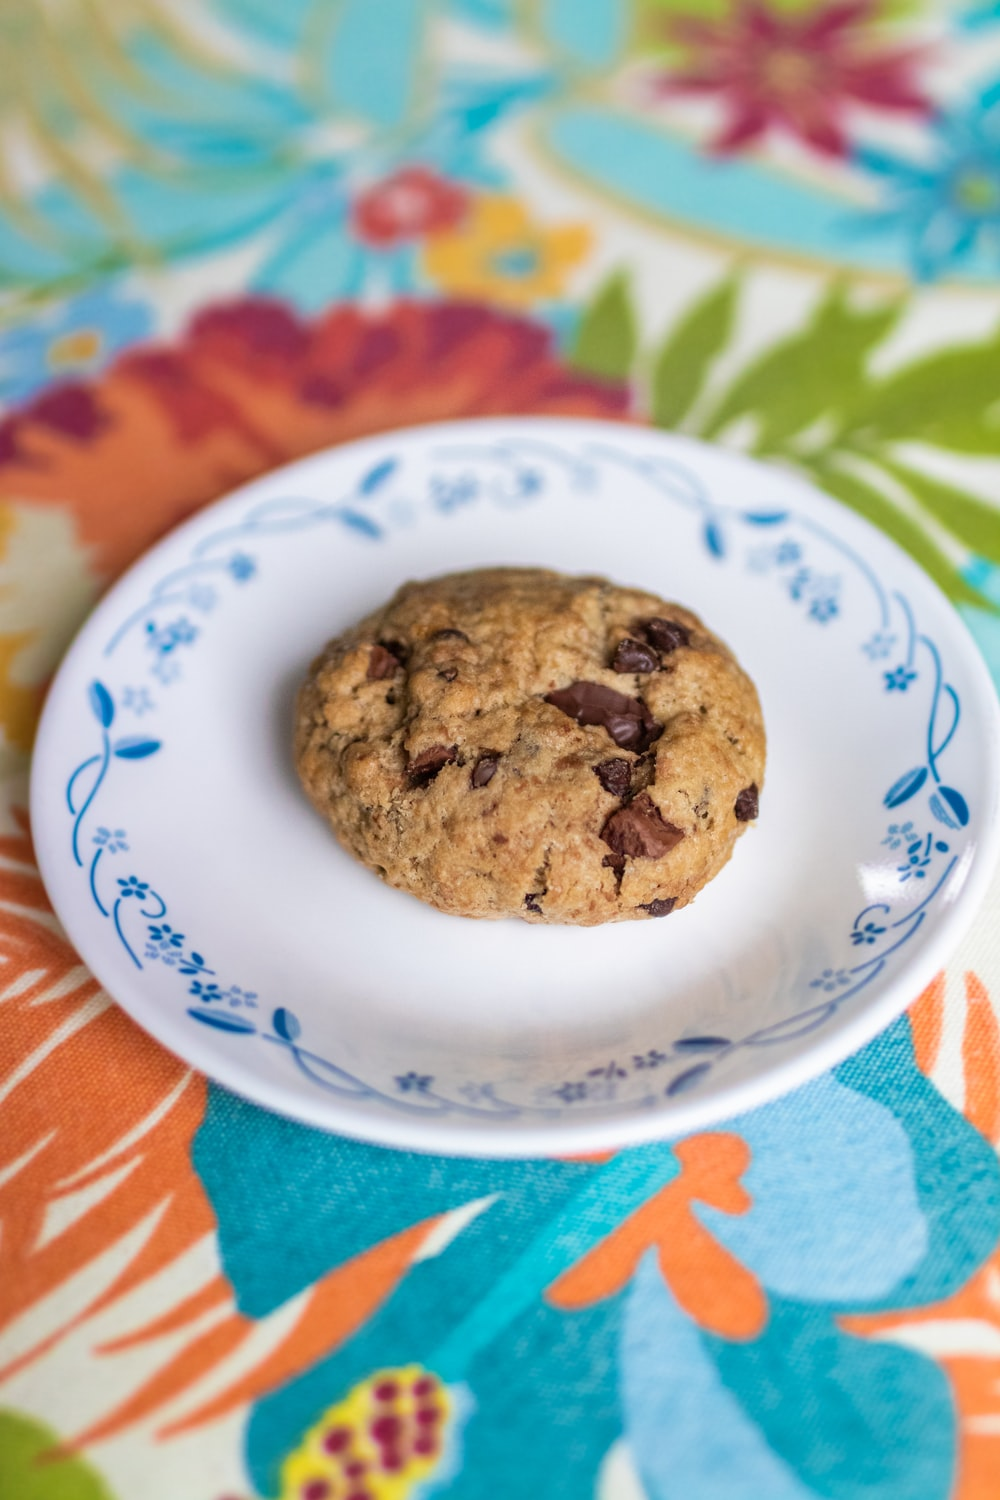 brown cookies on white and blue ceramic plate